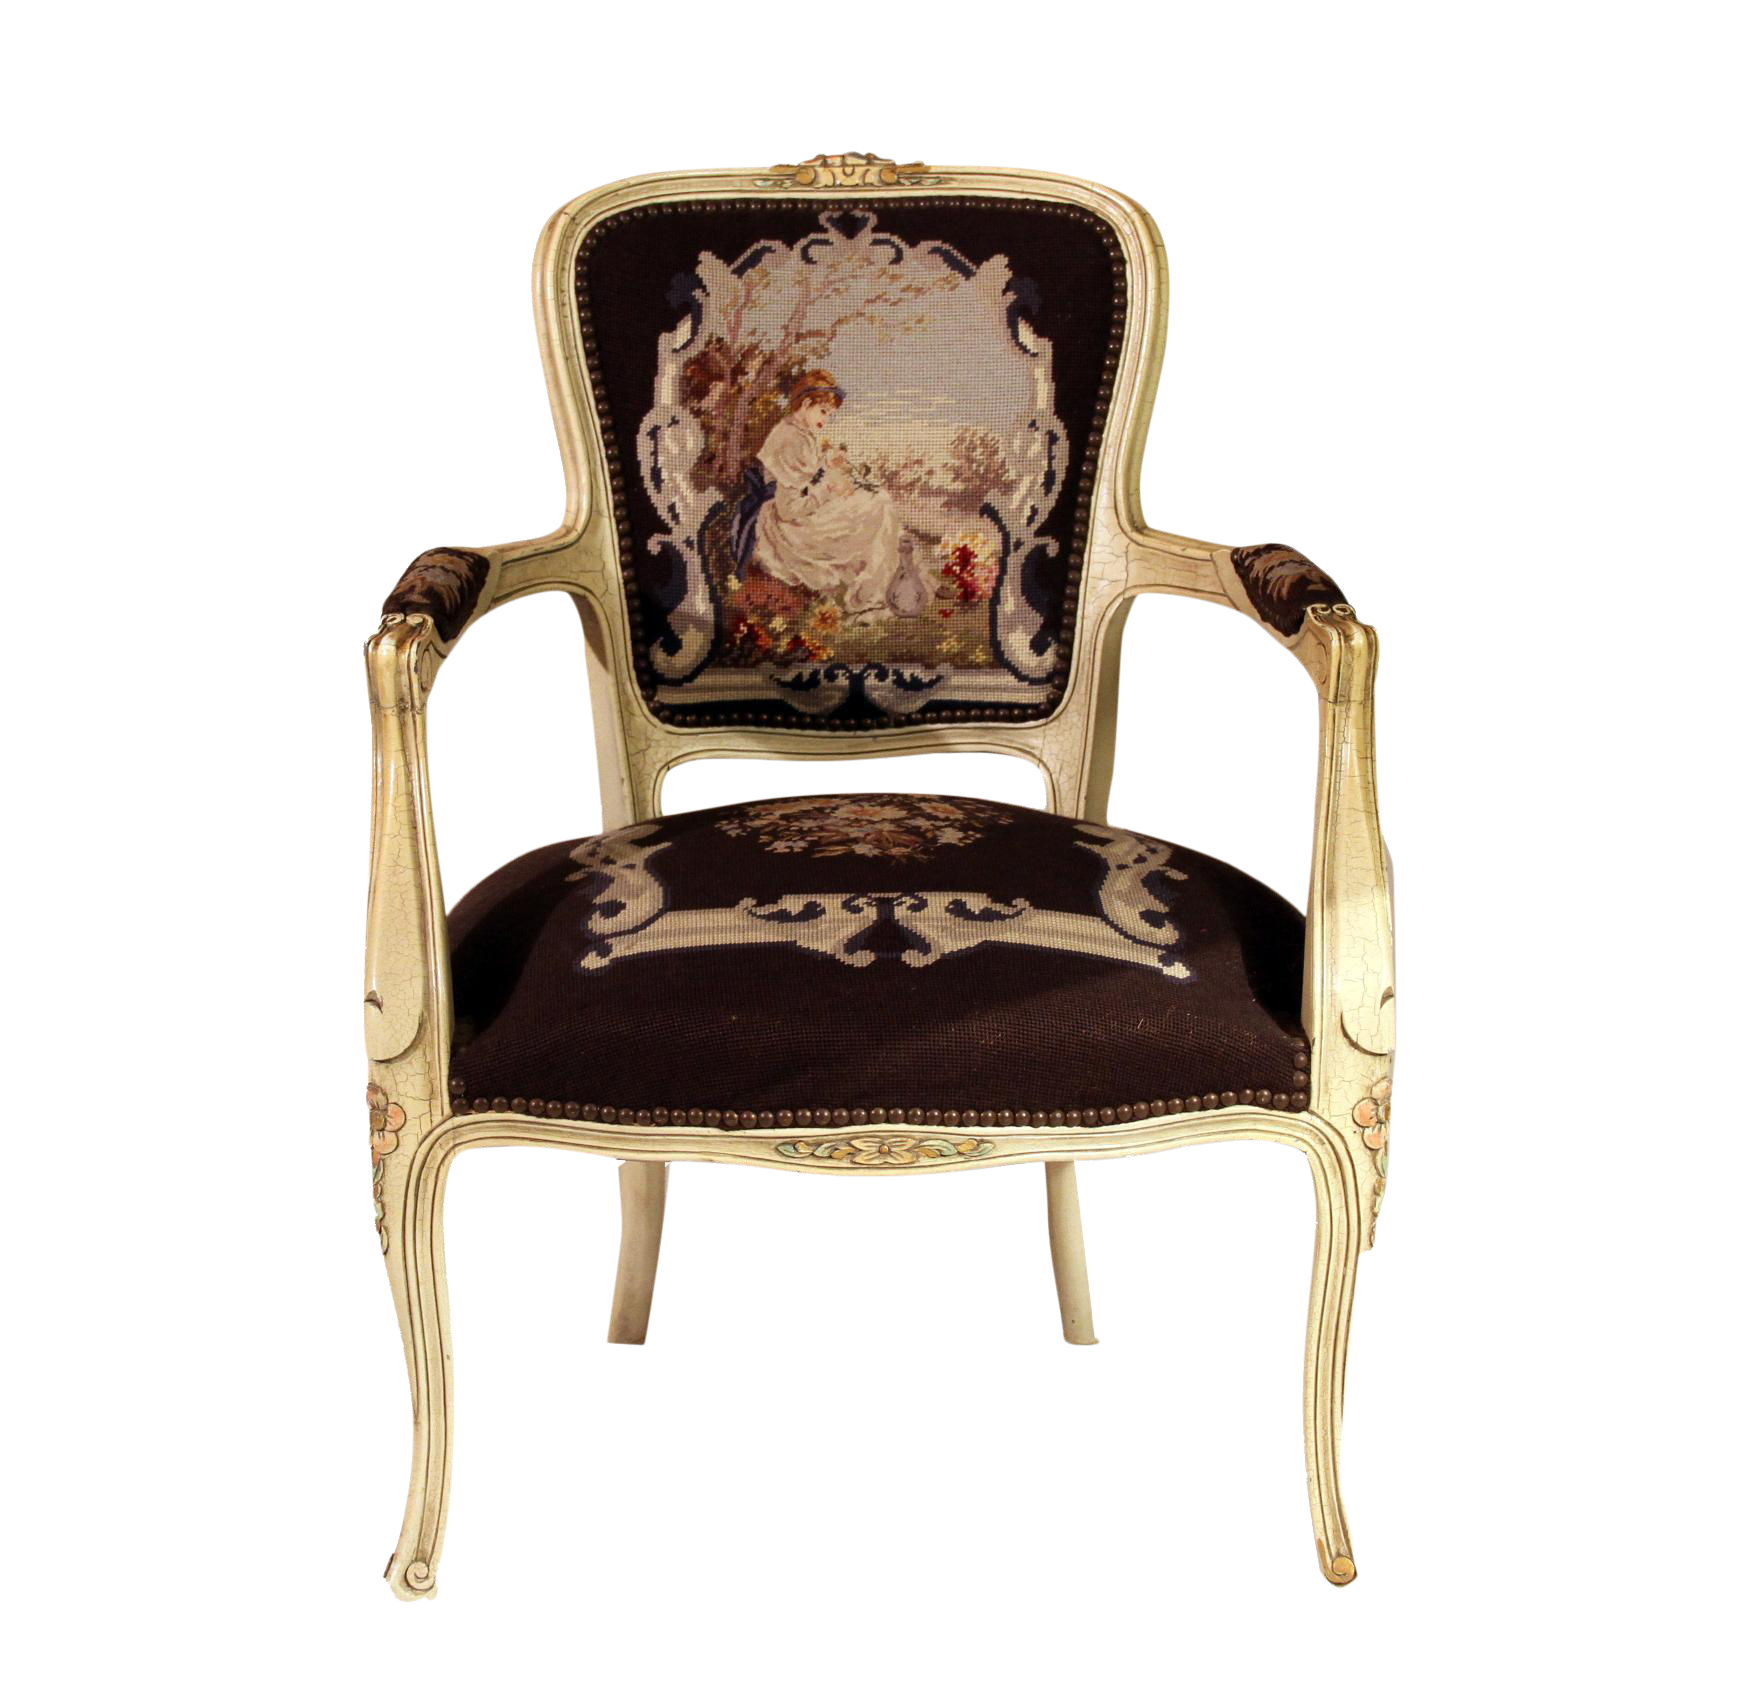 Charming Antique French Louis XV Needlepoint Chair